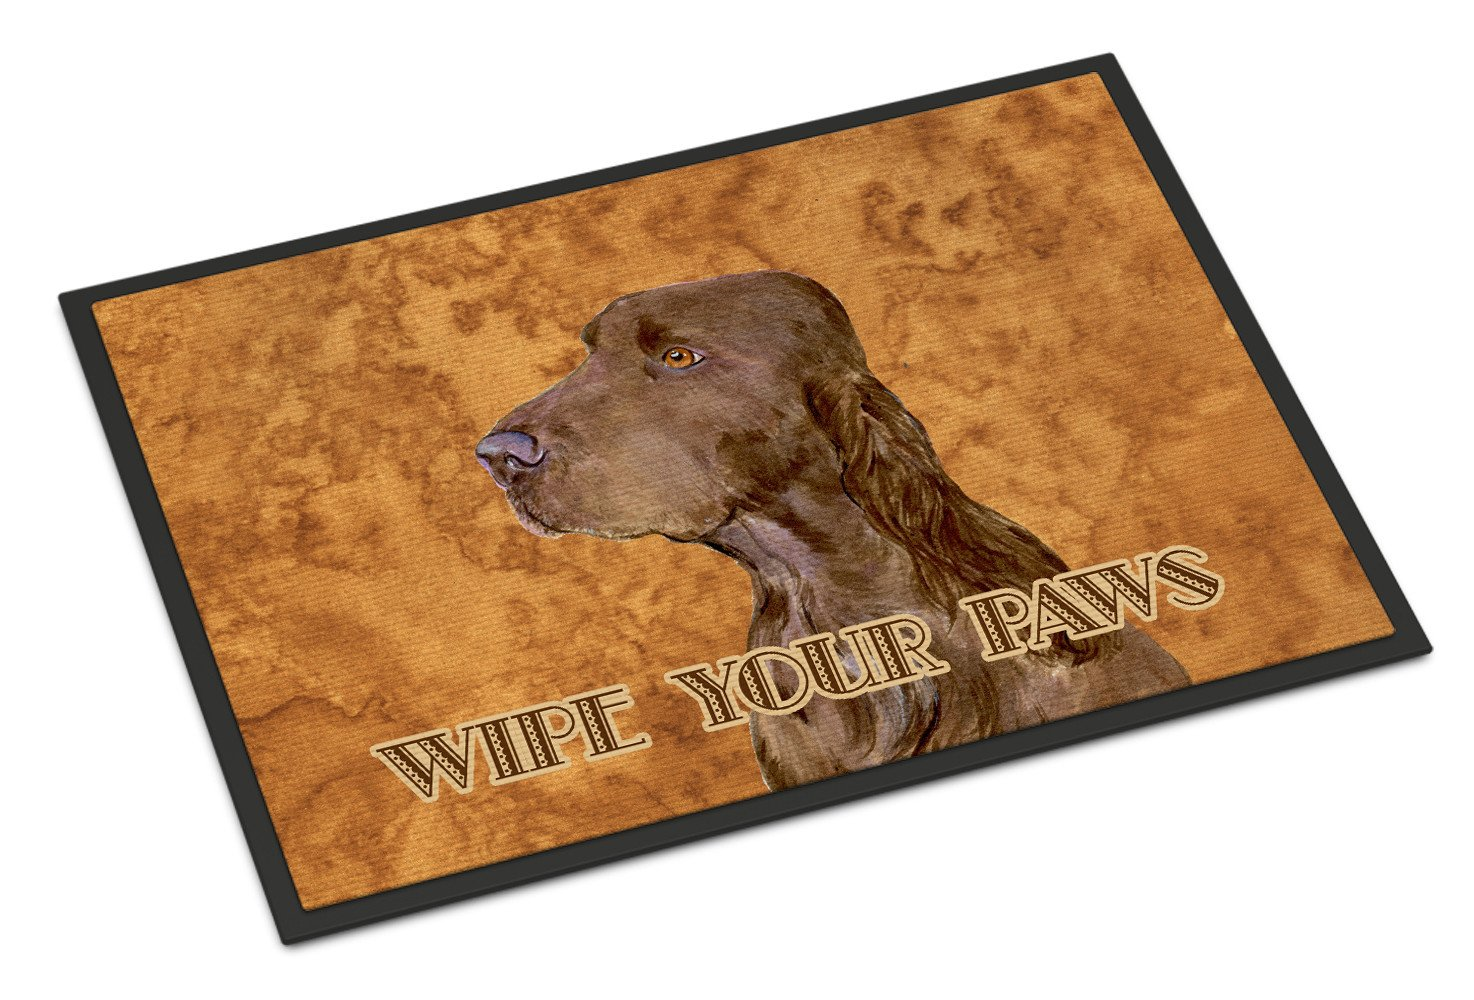 Field Spaniel Wipe your Paws Indoor or Outdoor Mat 18x27 SS4879MAT - the-store.com